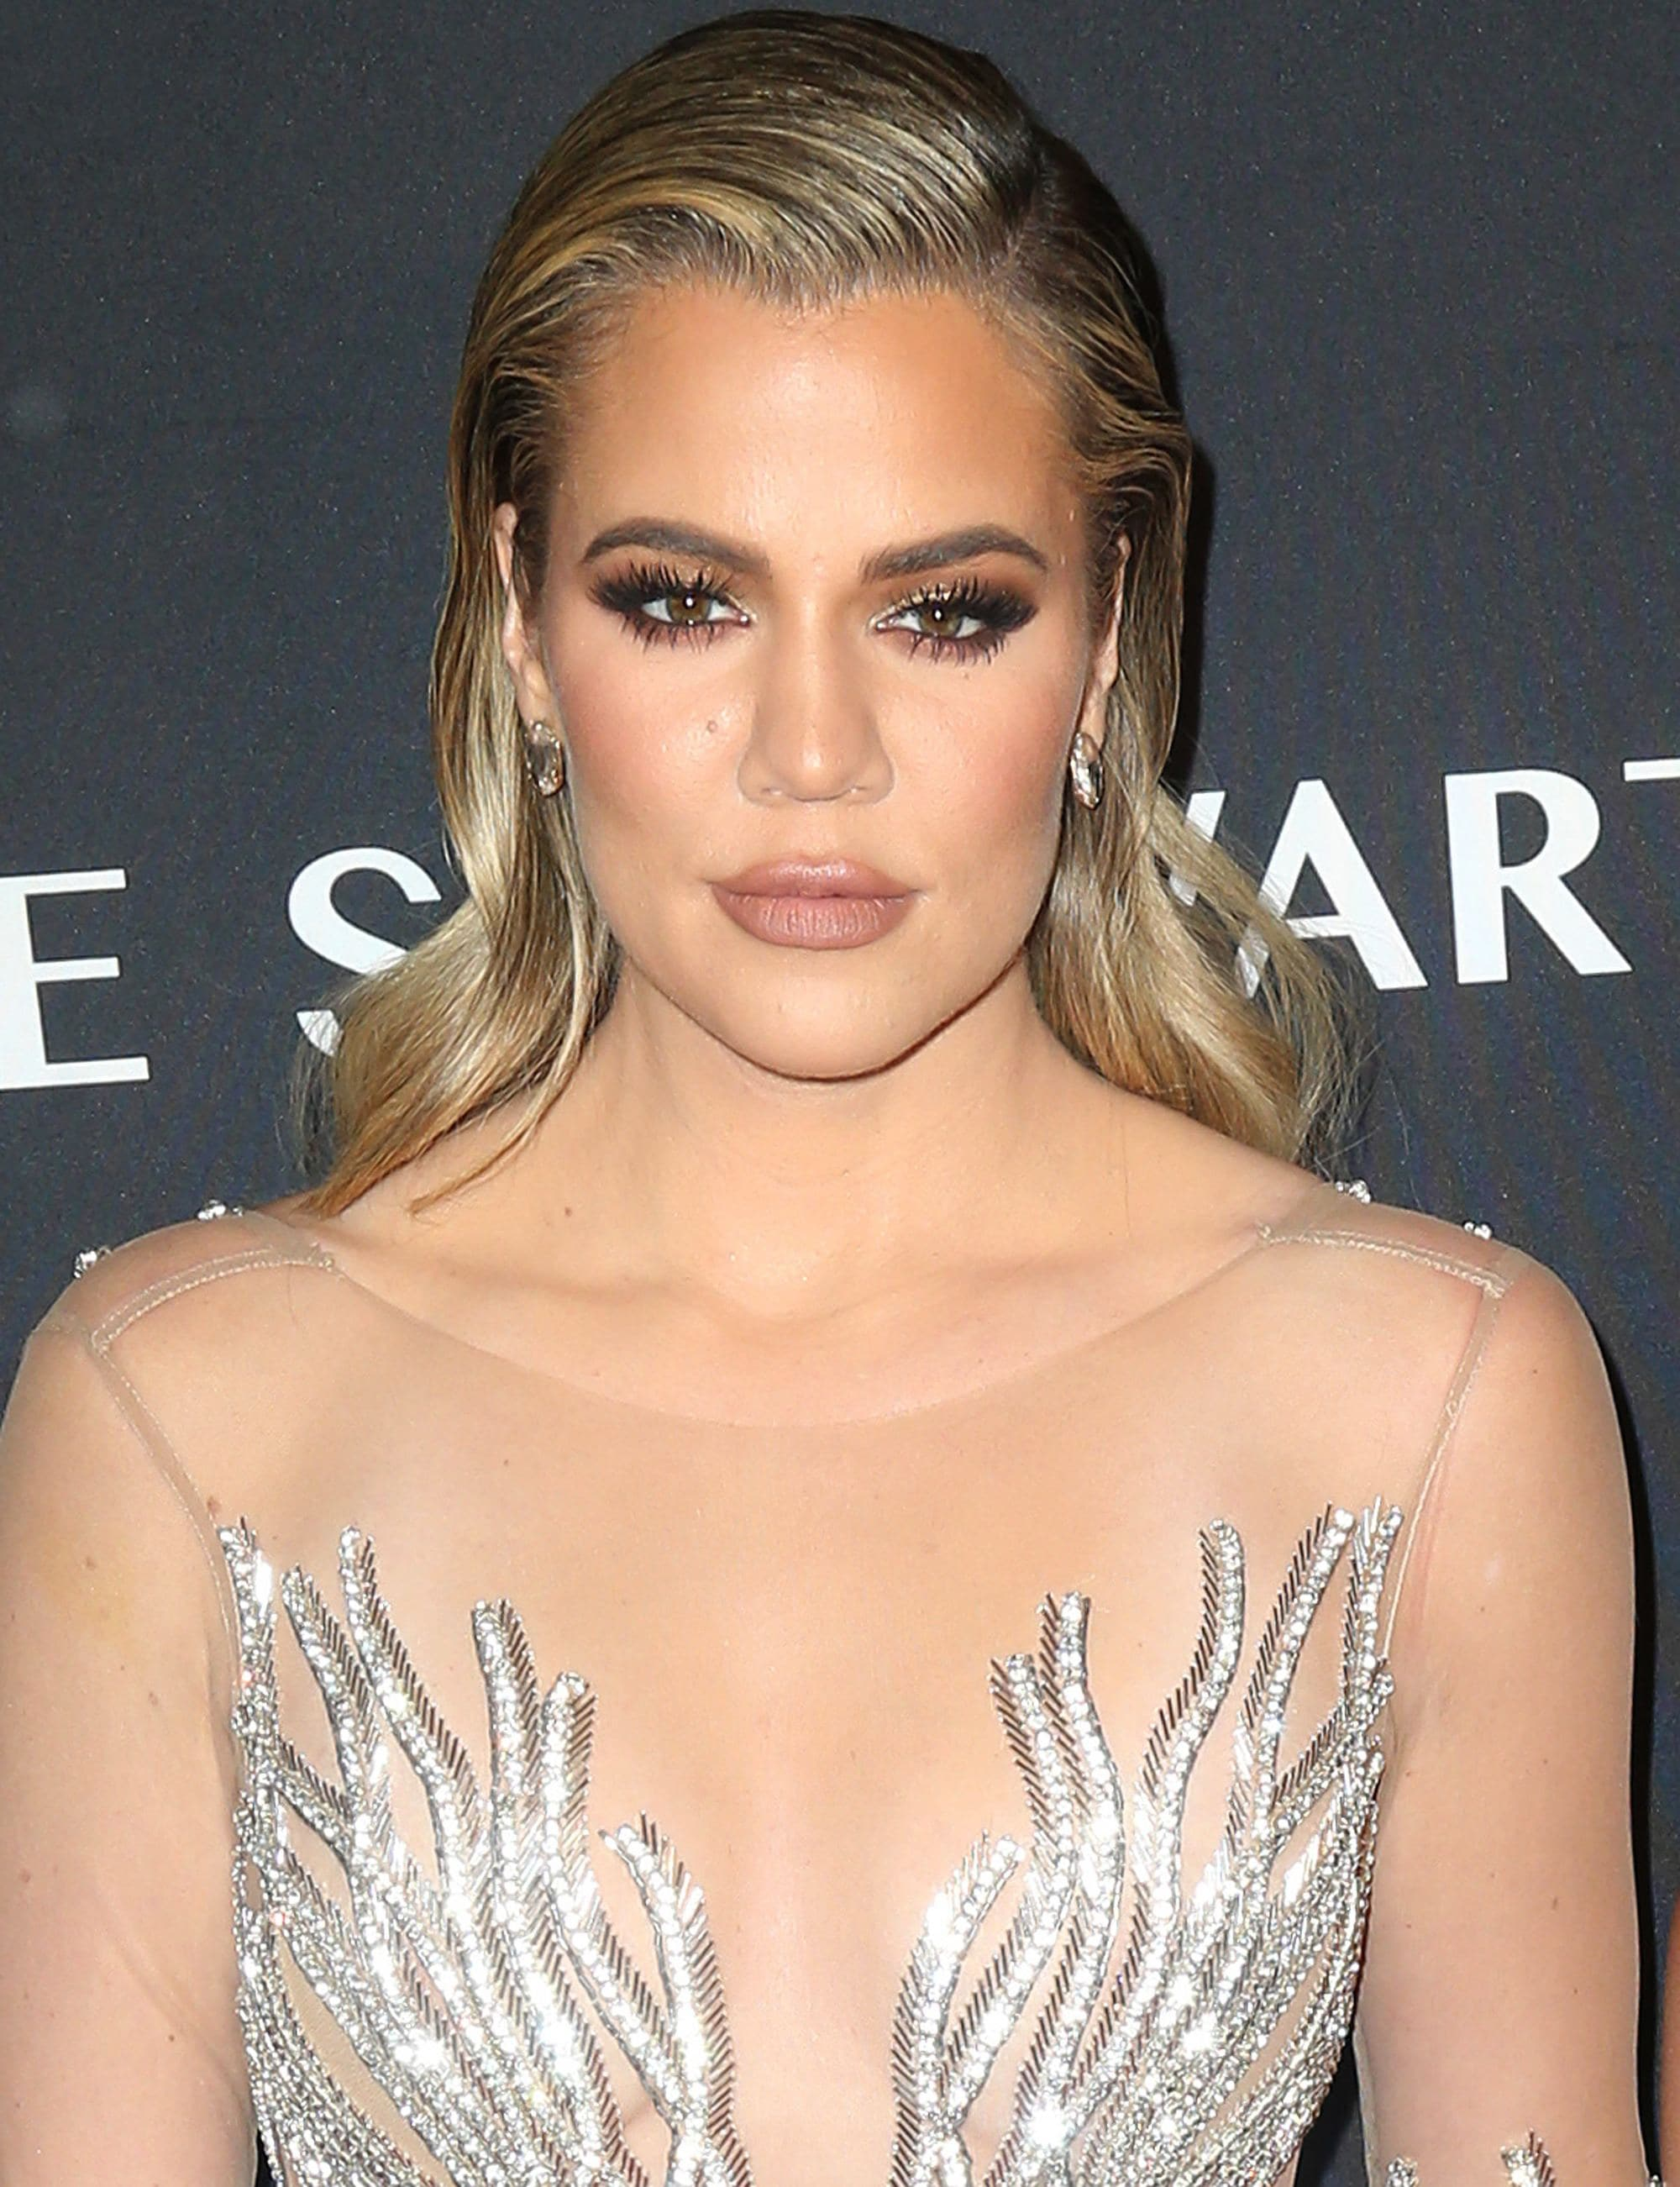 90s Throwback Khloe Kardashian Is Bringing Back Crimped Hairstyles